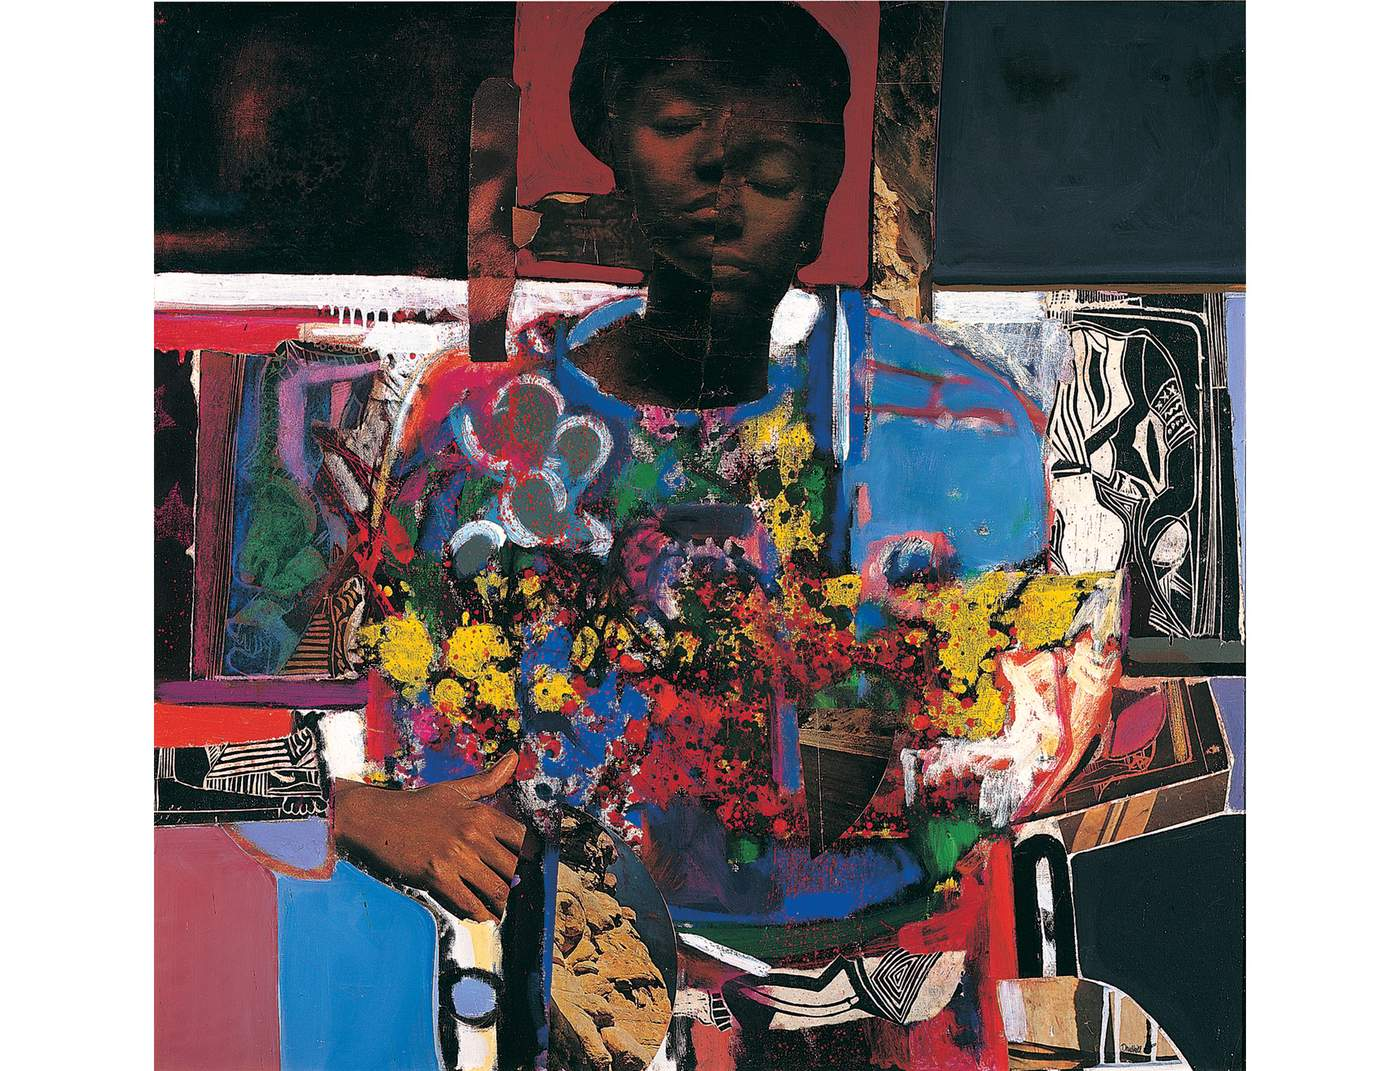 Woman with Flowers by David Driskell